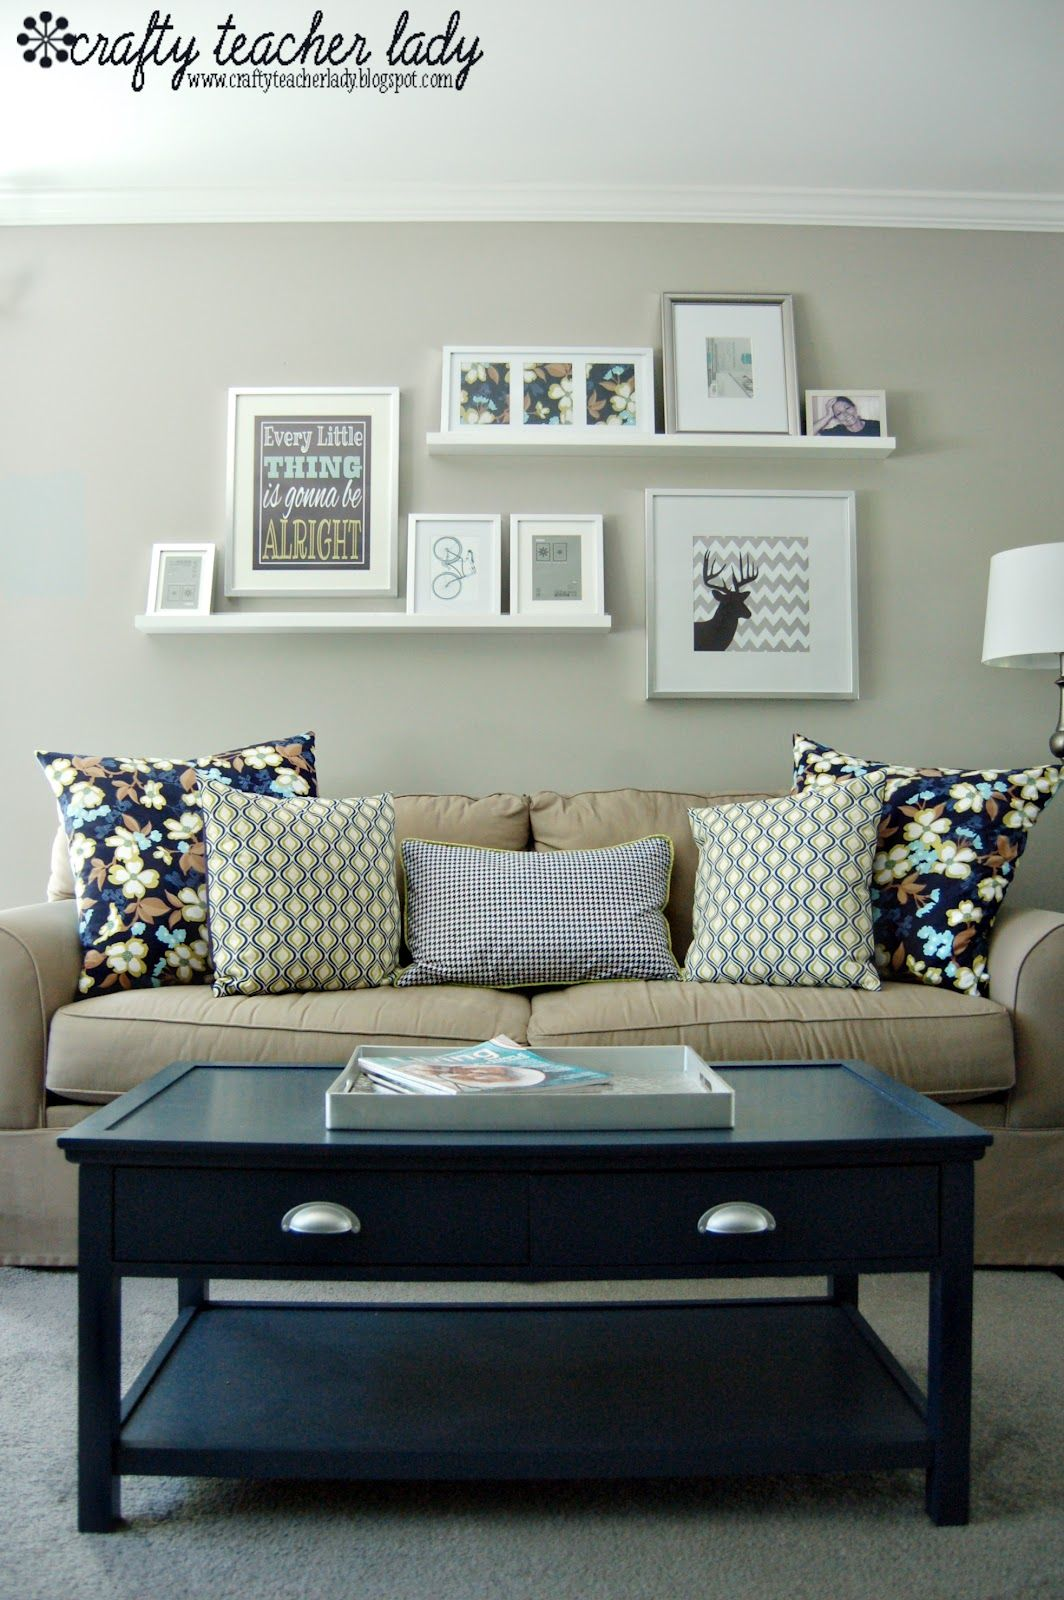 Gallery Wall Above The Sofa I Like Floating Shelves As An Easy Way To Switch Out Seasonal Framed Items Without Having Hang Them On